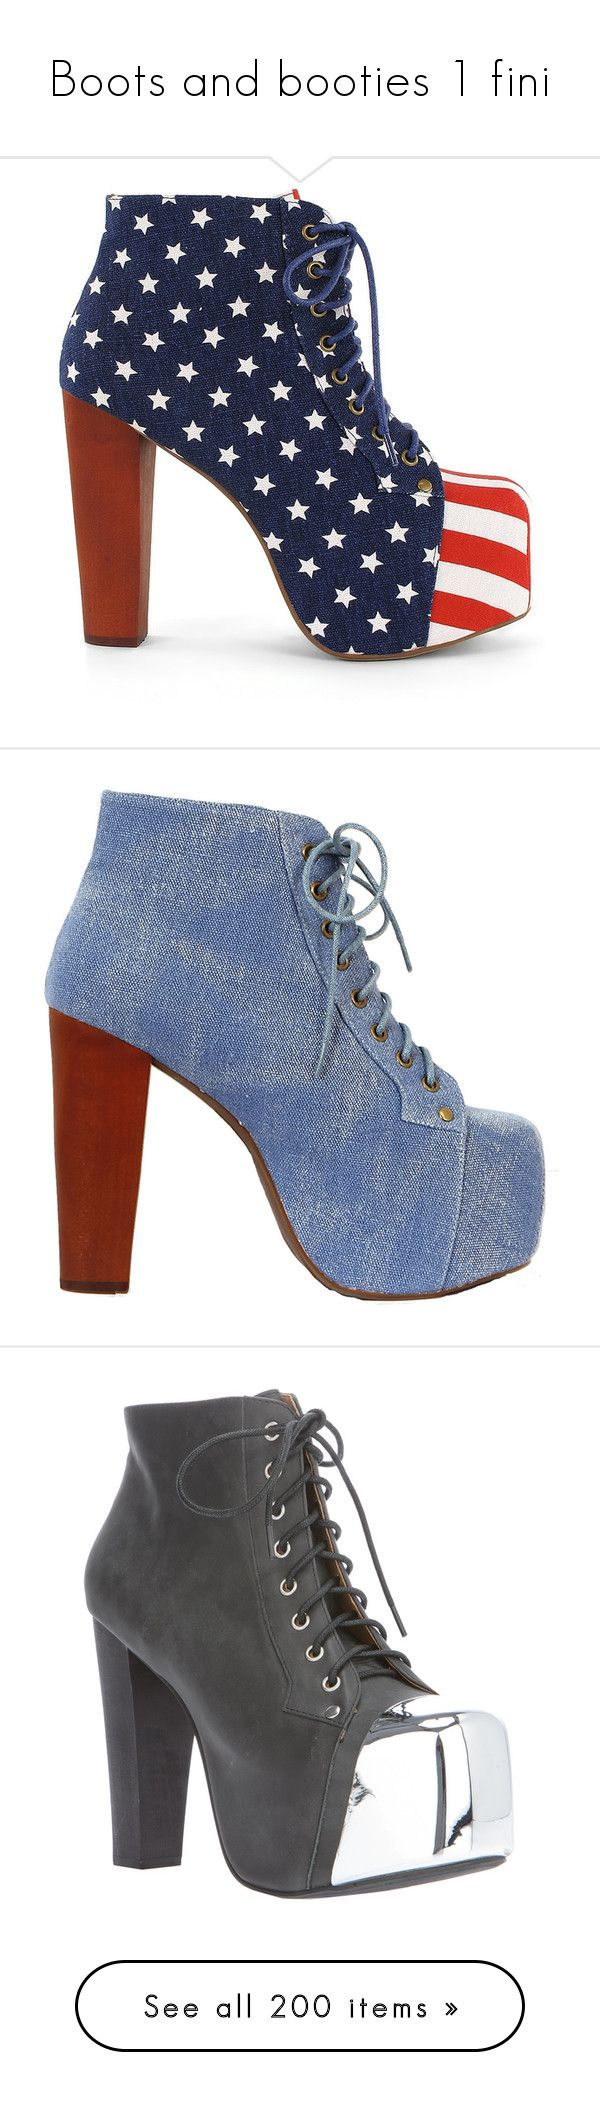 """Boots and booties 1 fini"" by lonely-wrestling-fan ❤ liked on Polyvore featuring shoes, boots, ankle booties, heels, jeffrey campbell, zapatos, blue, party shoes, faux suede lace-up booties and lace up heel booties"